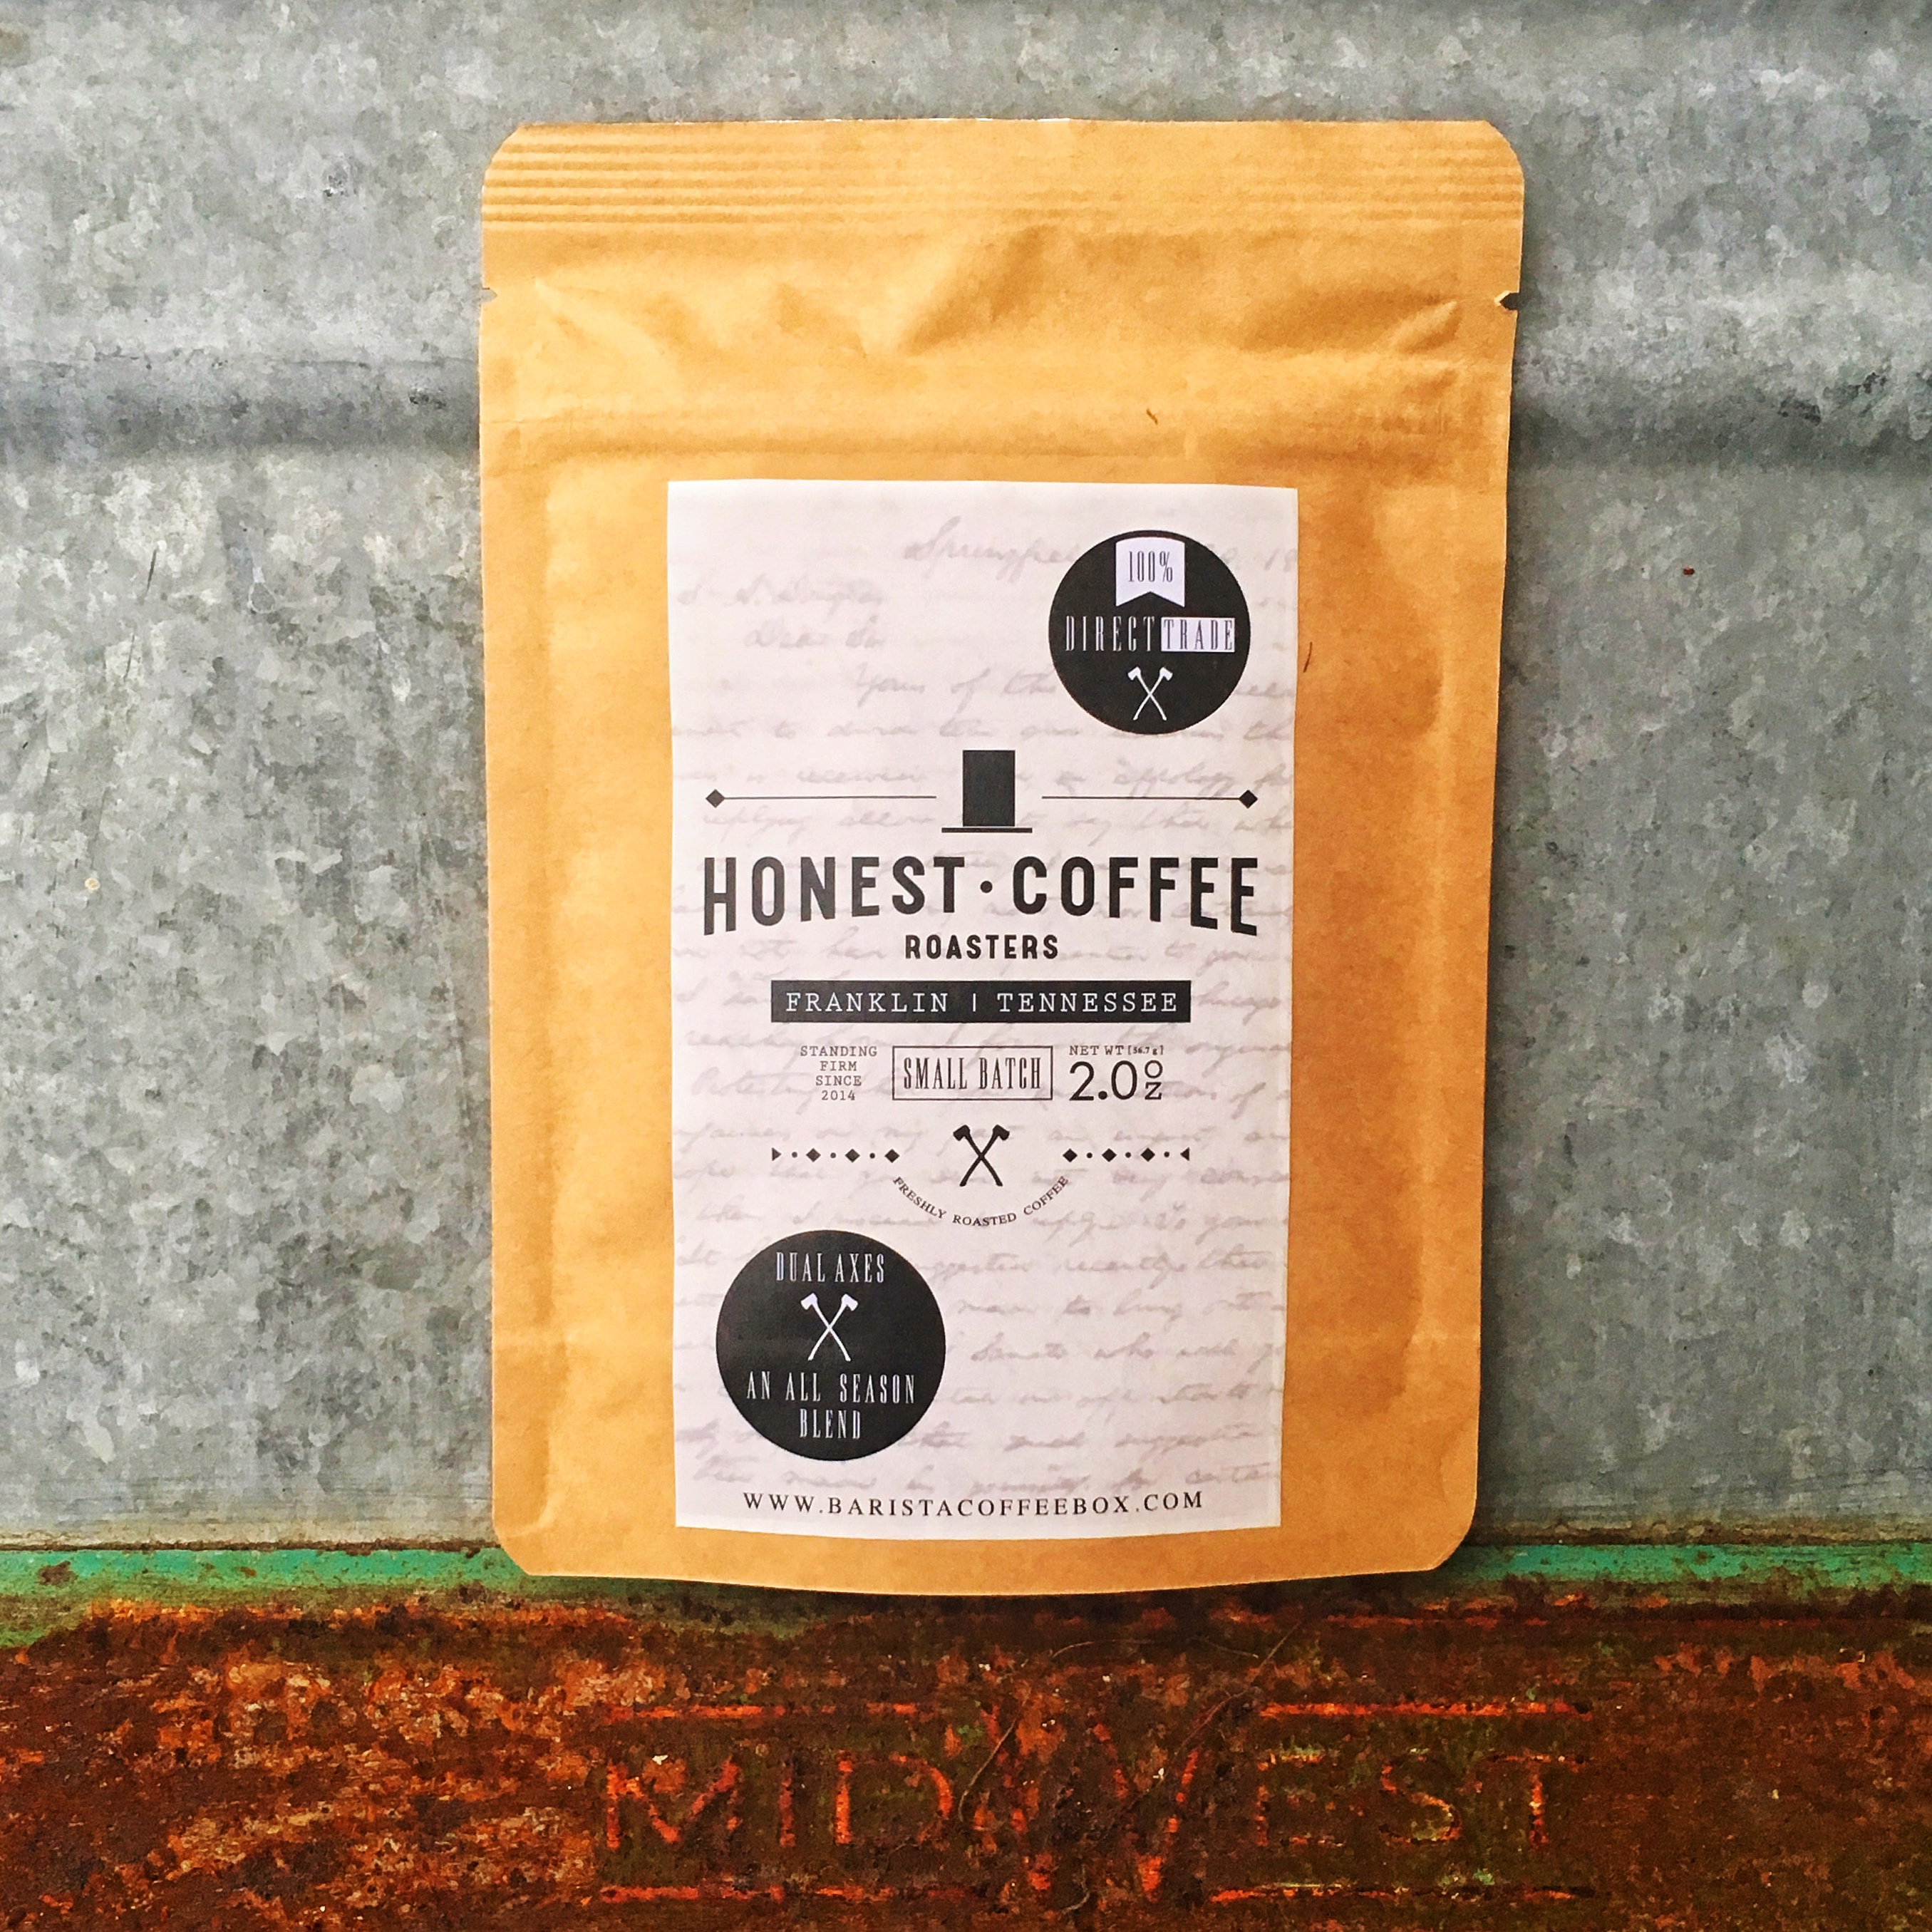 Barista Coffee Box x Honest Coffee Roasters Dual Axes Blend